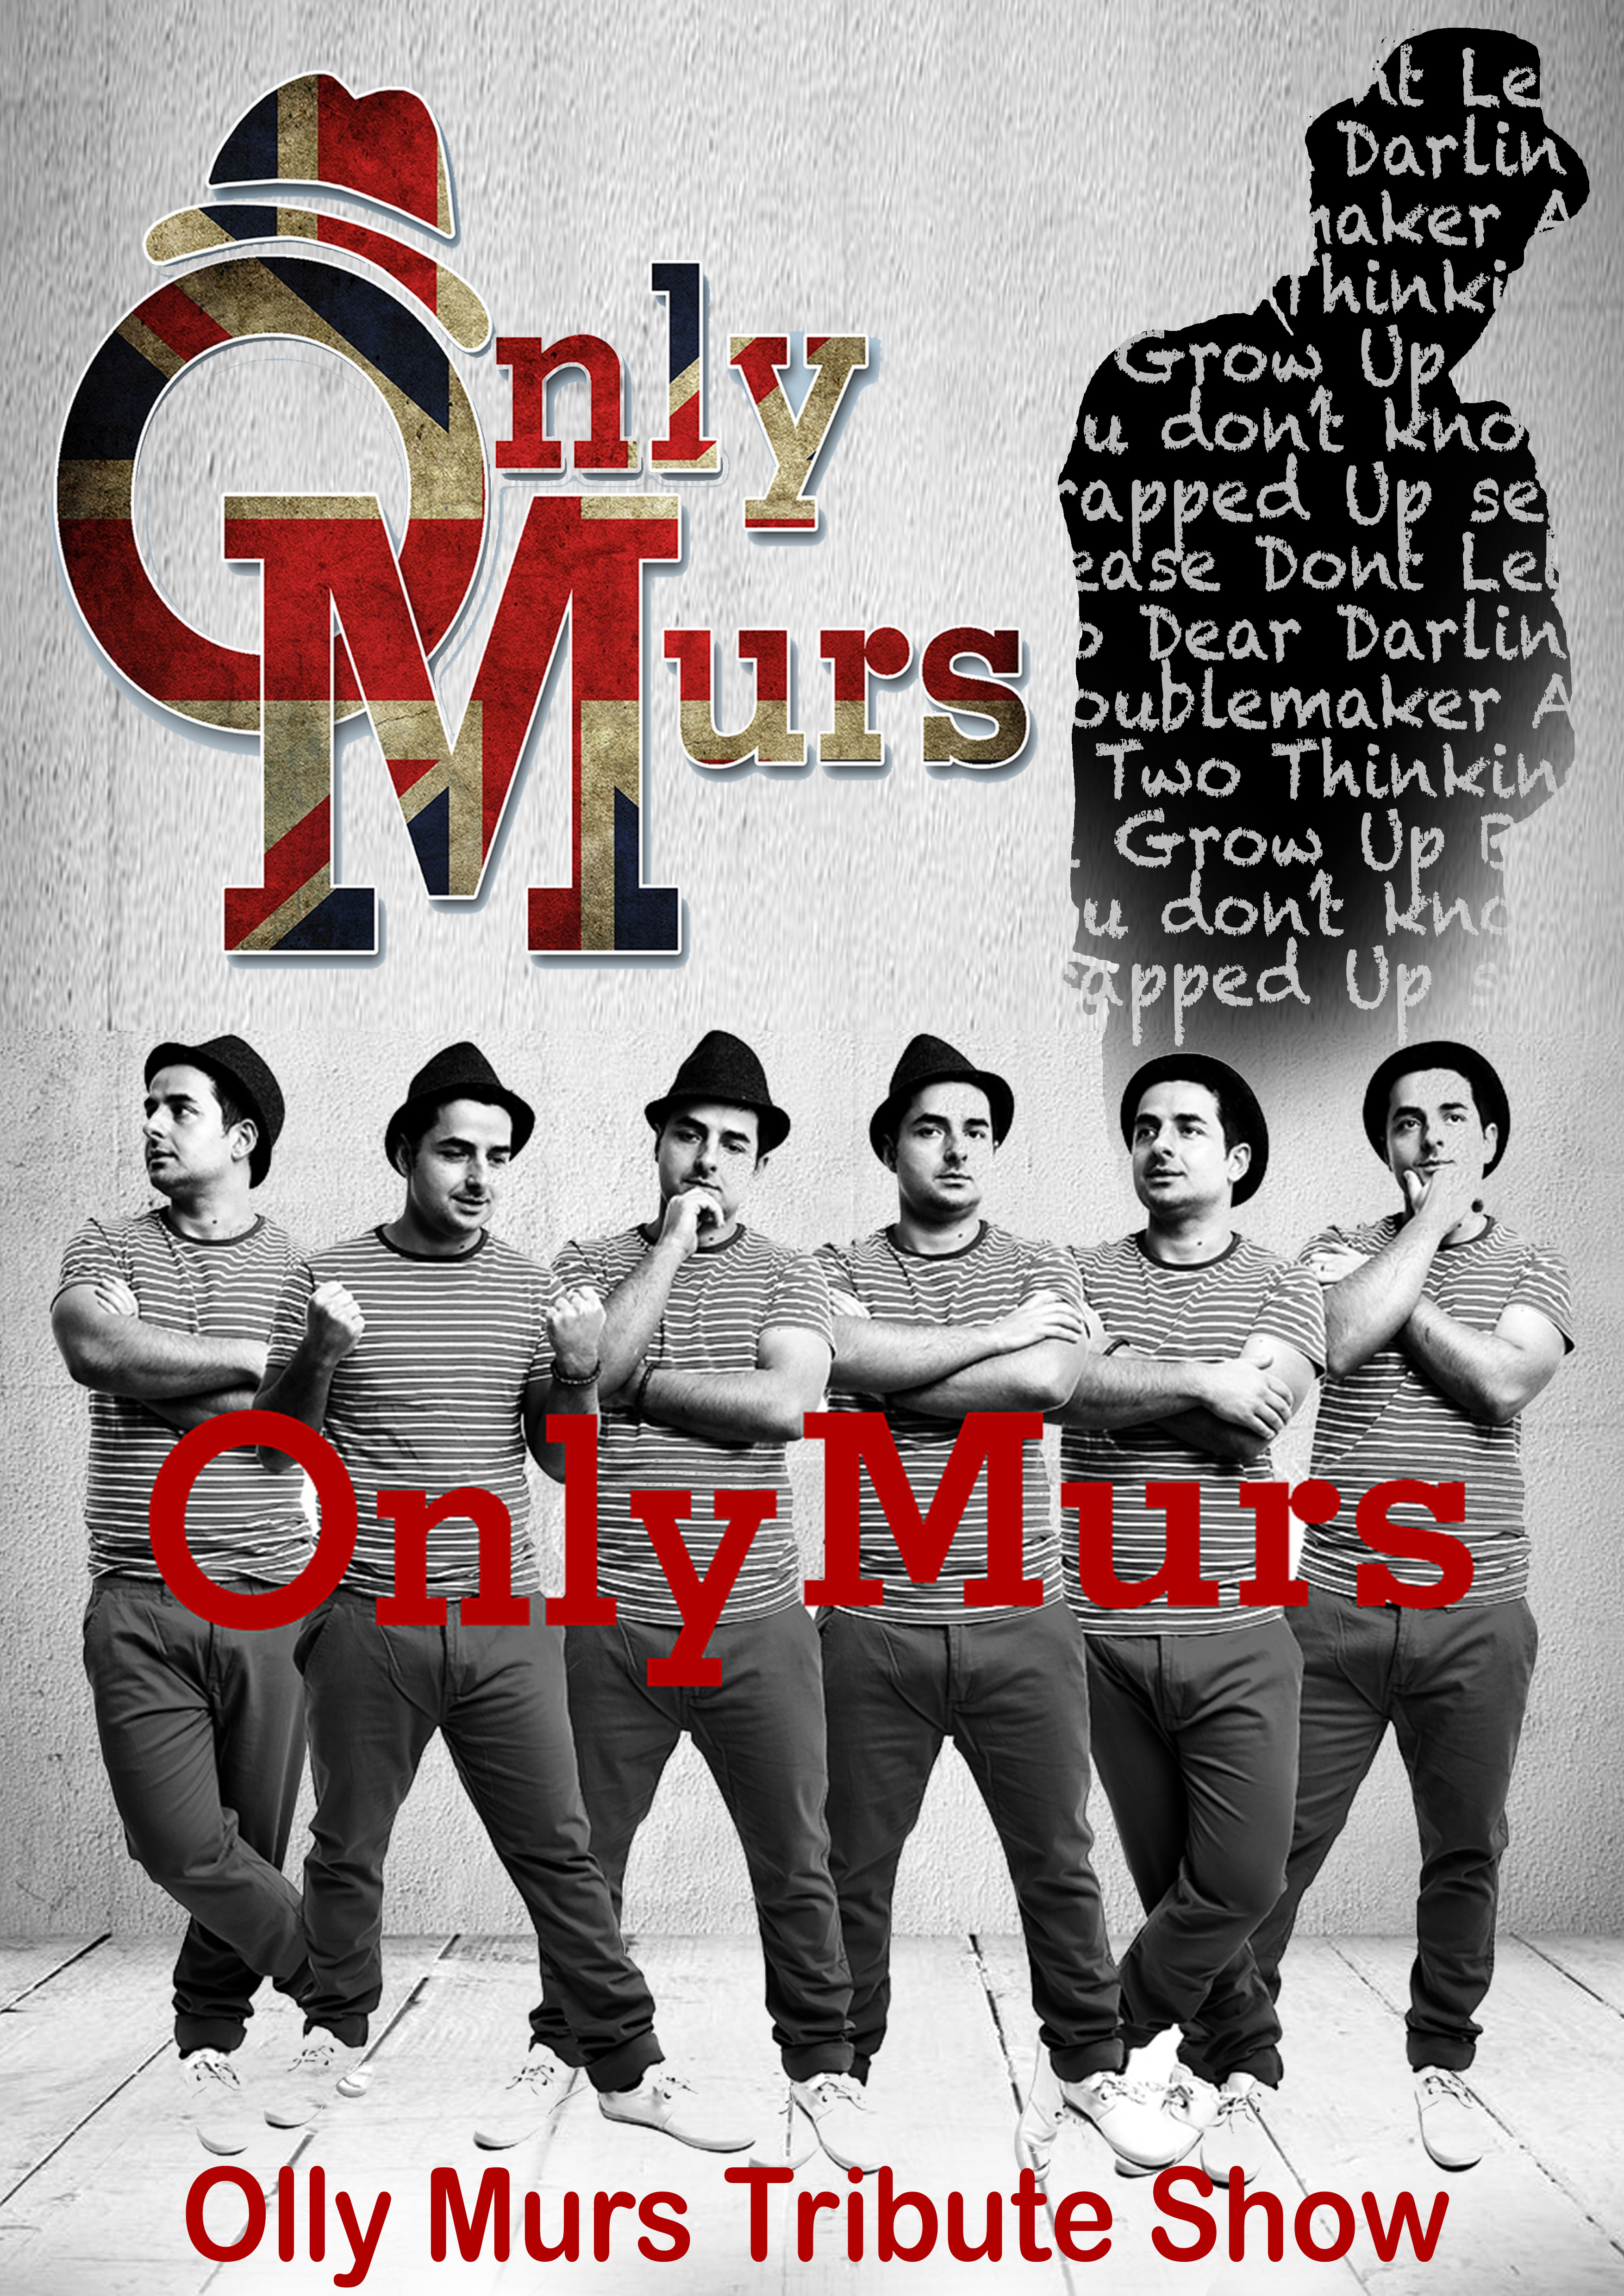 Olly Murs Tribute Show